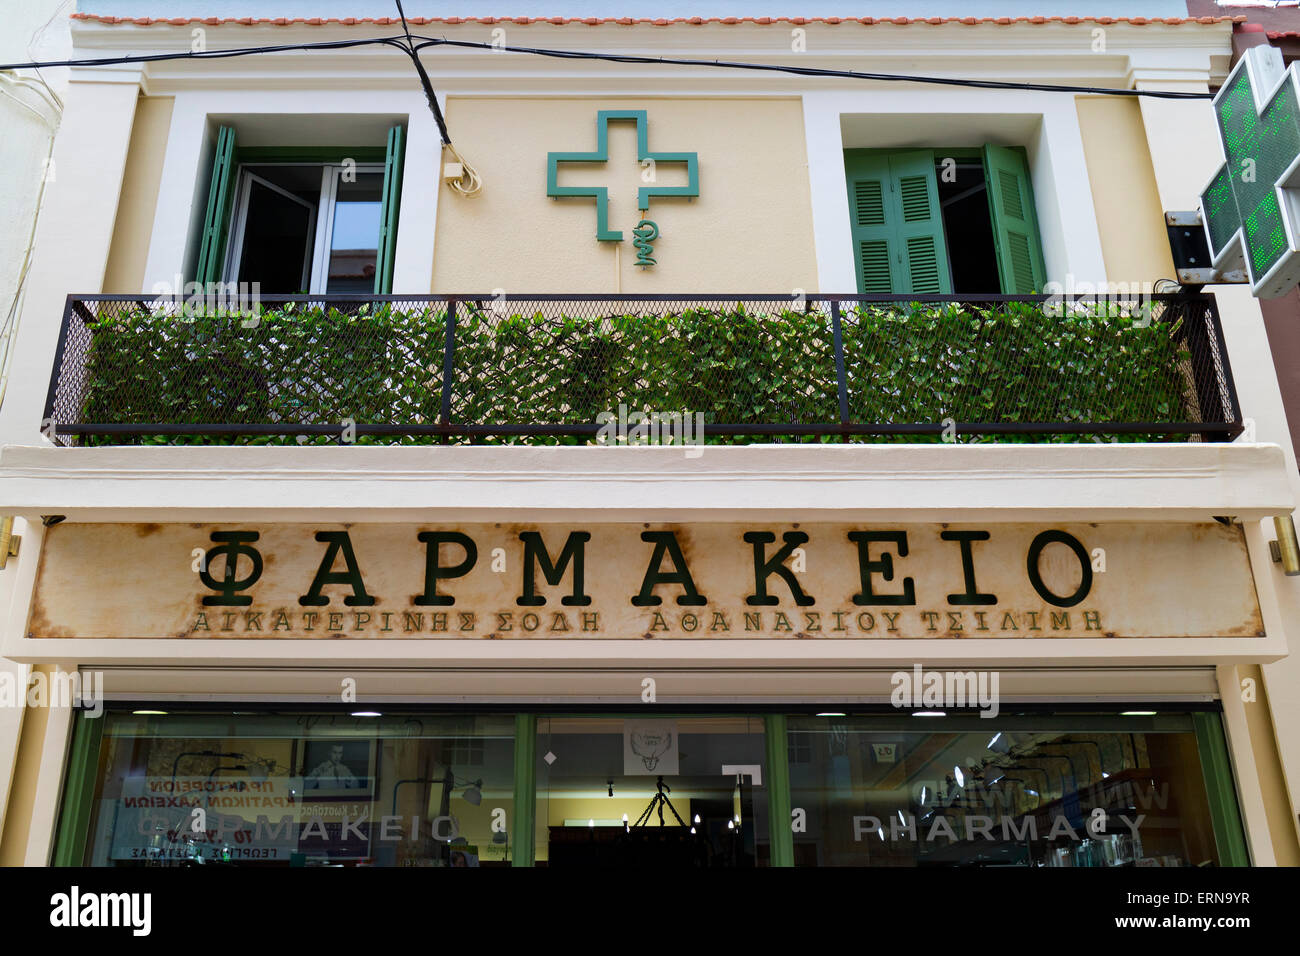 Pharmacy in the city of Chios on the isle of Chios, Greece - Stock Image